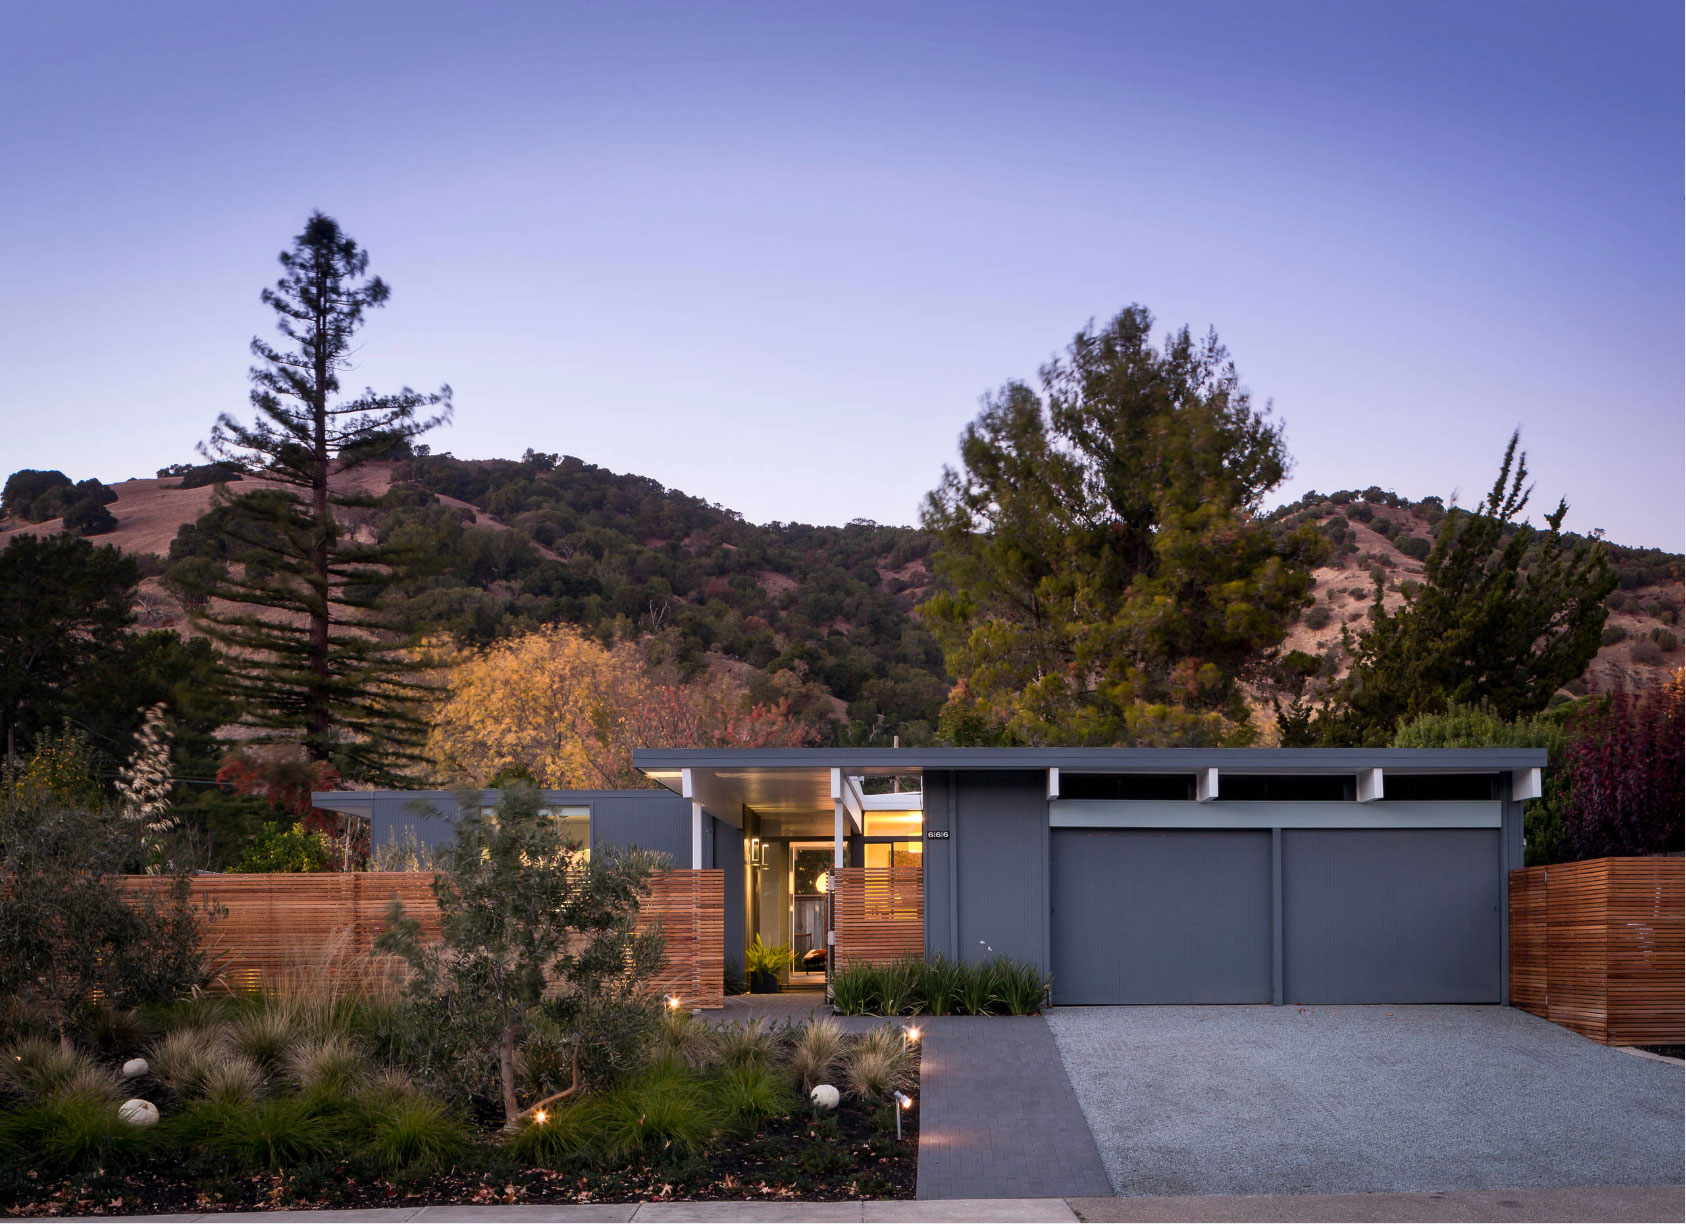 modern flat roof one-story home surrounded by trees and mountains in the background